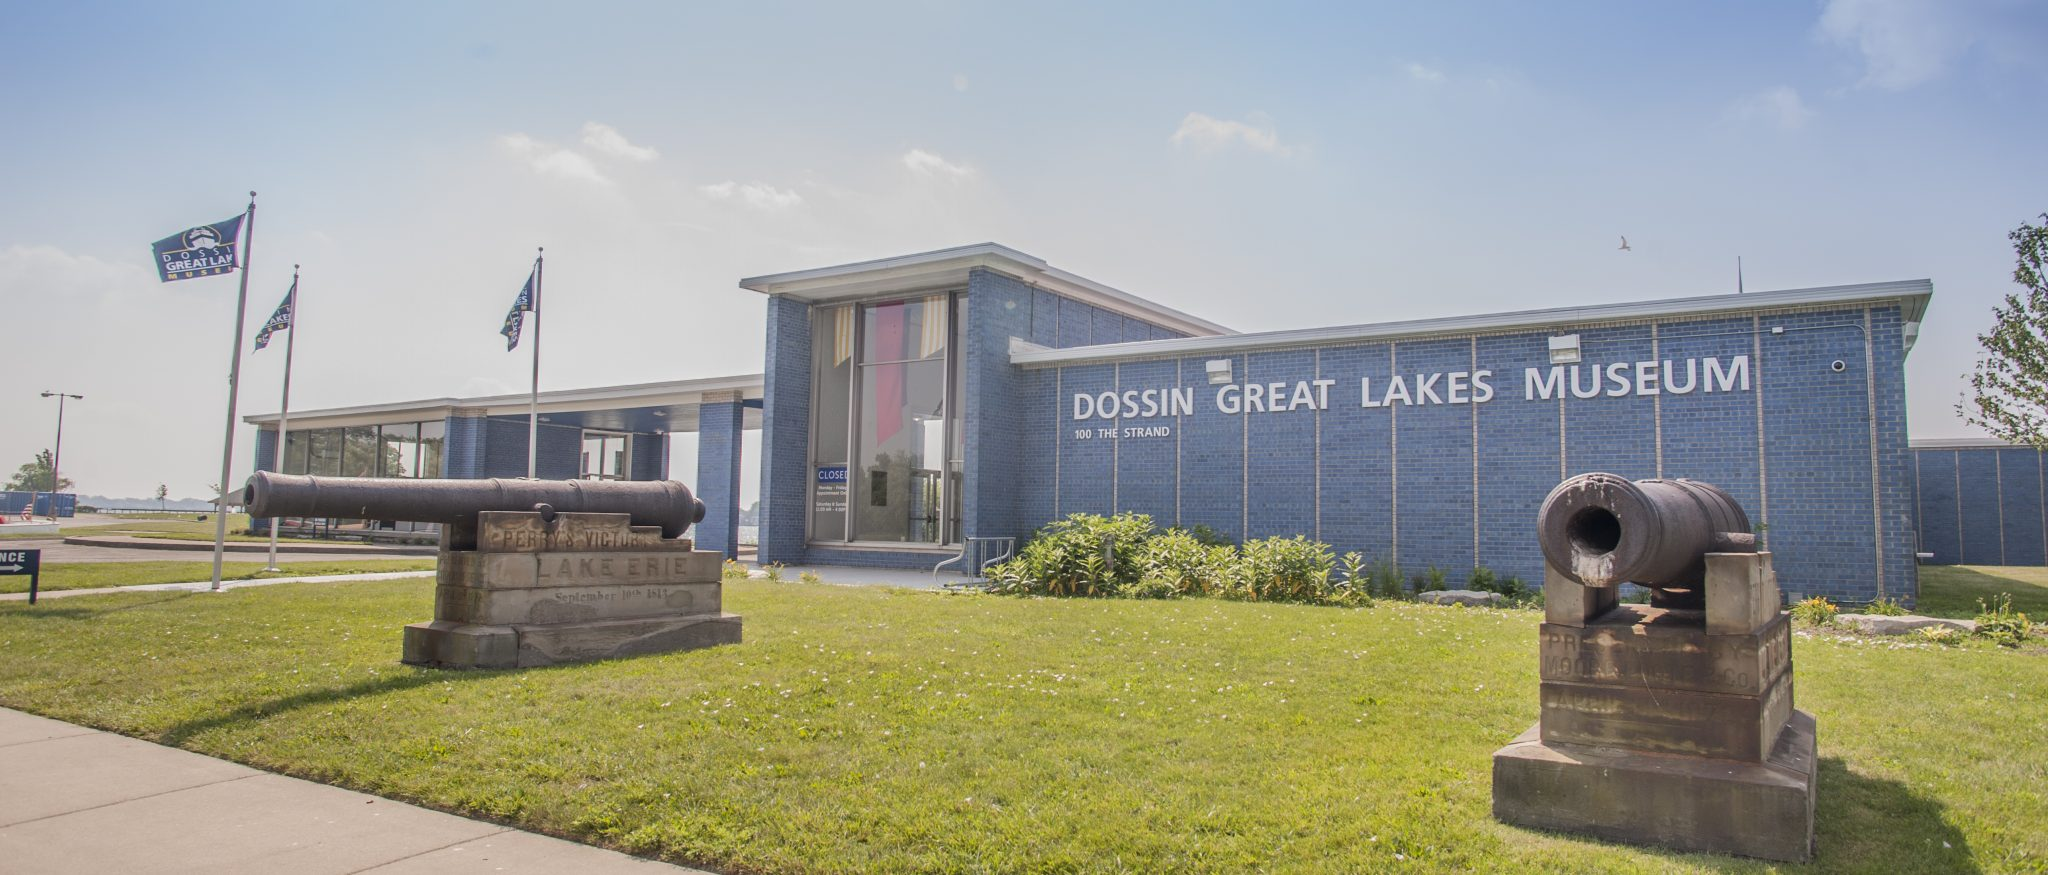 THE DOSSIN GREAT LAKES MUSEUM. PHOTO DETROIT HISTORICAL SOCIETY